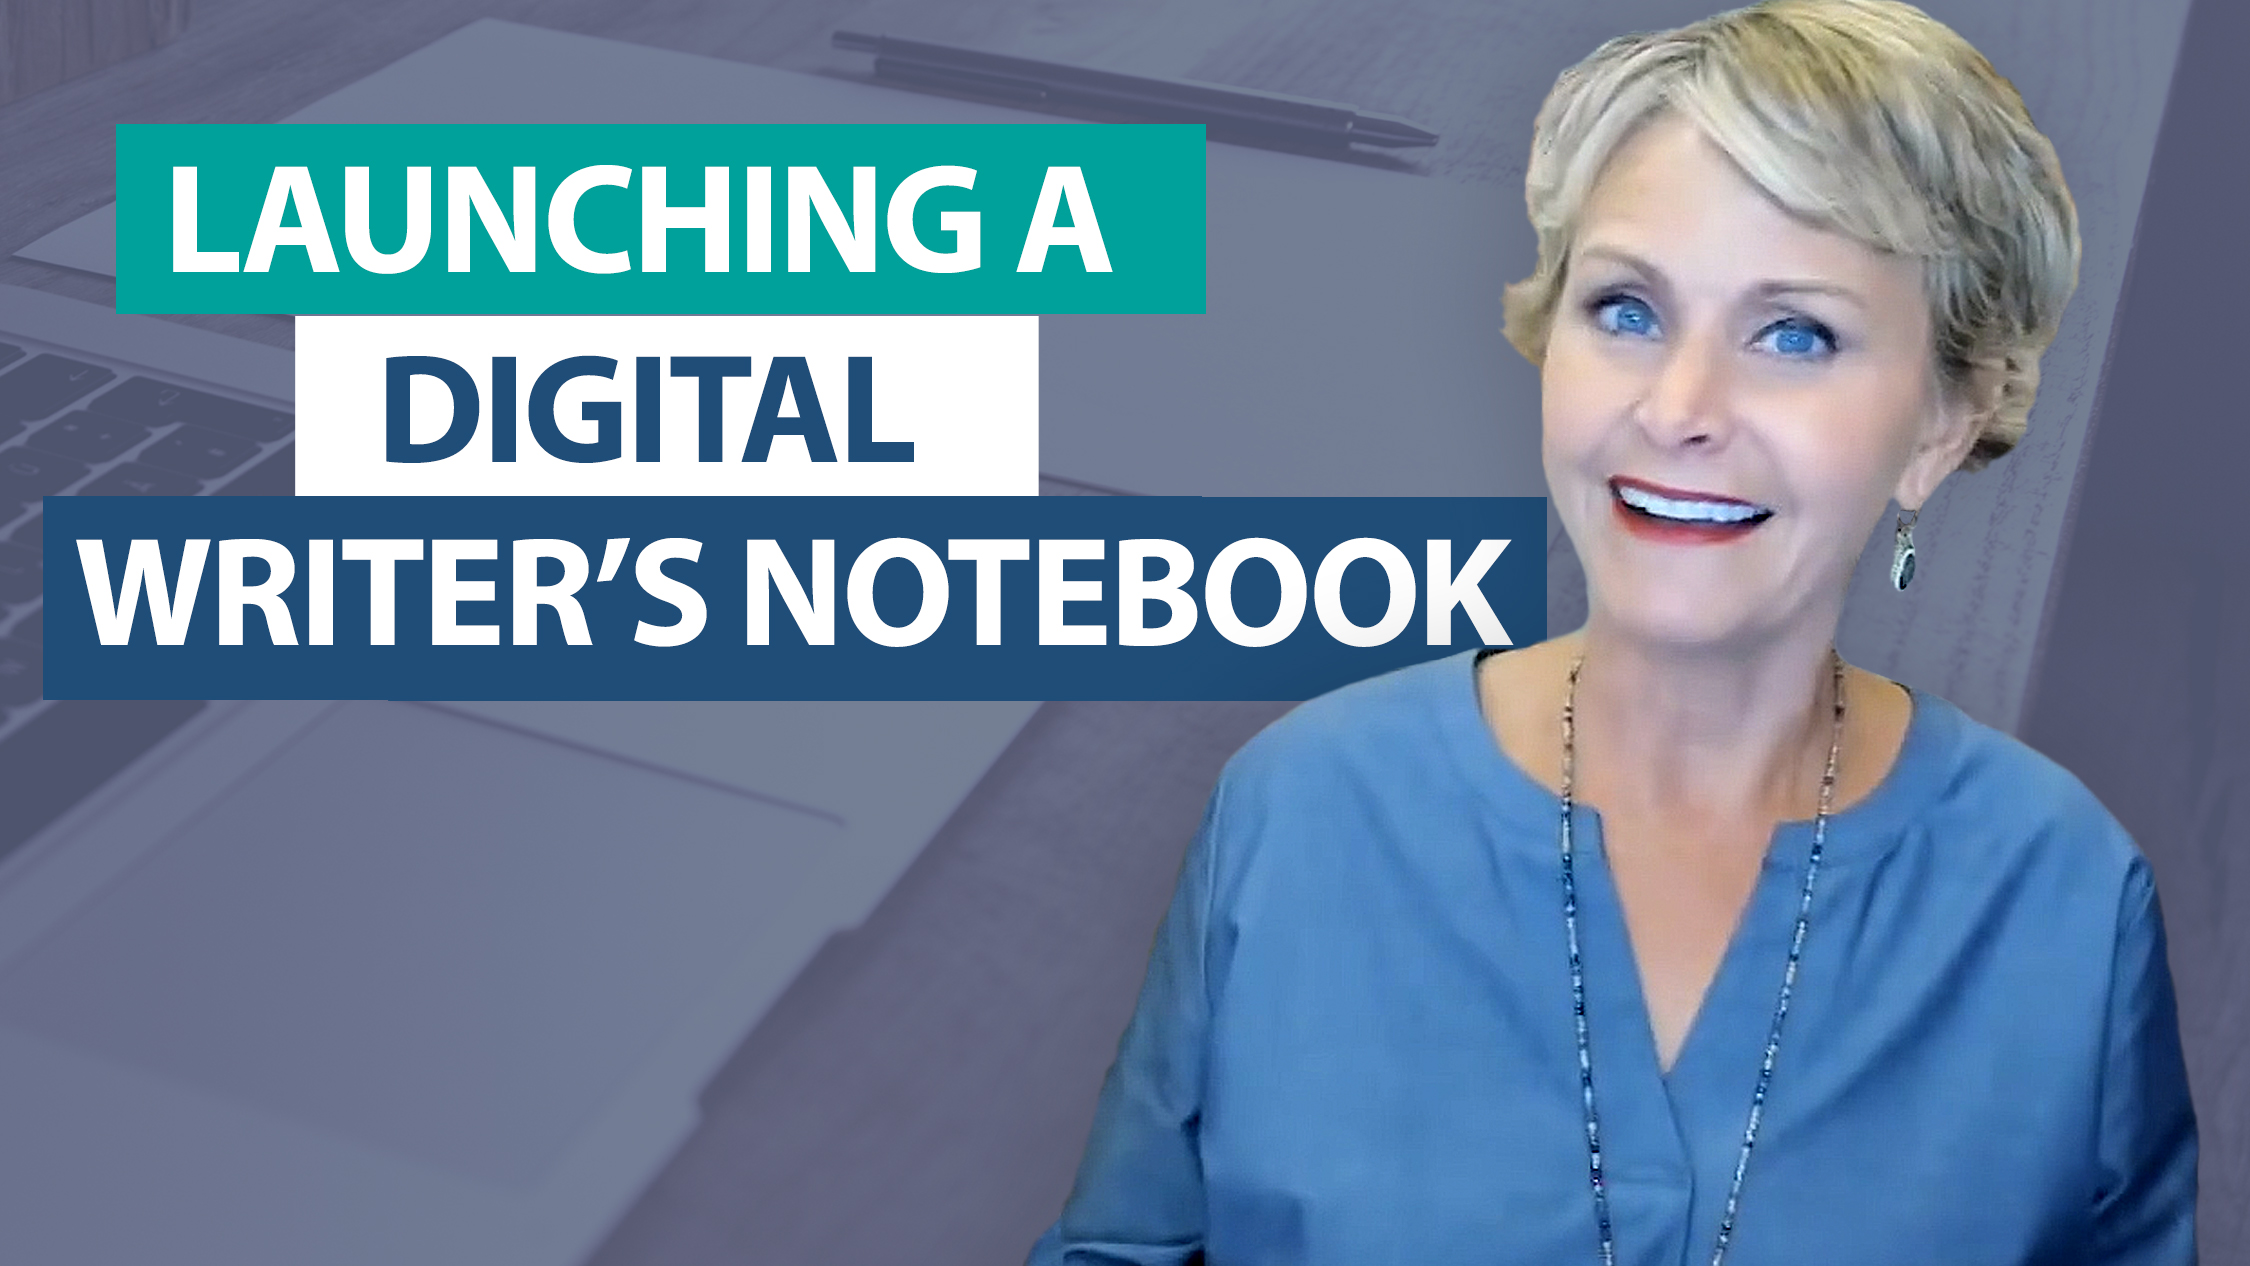 How do I launch a digital writer's notebook?